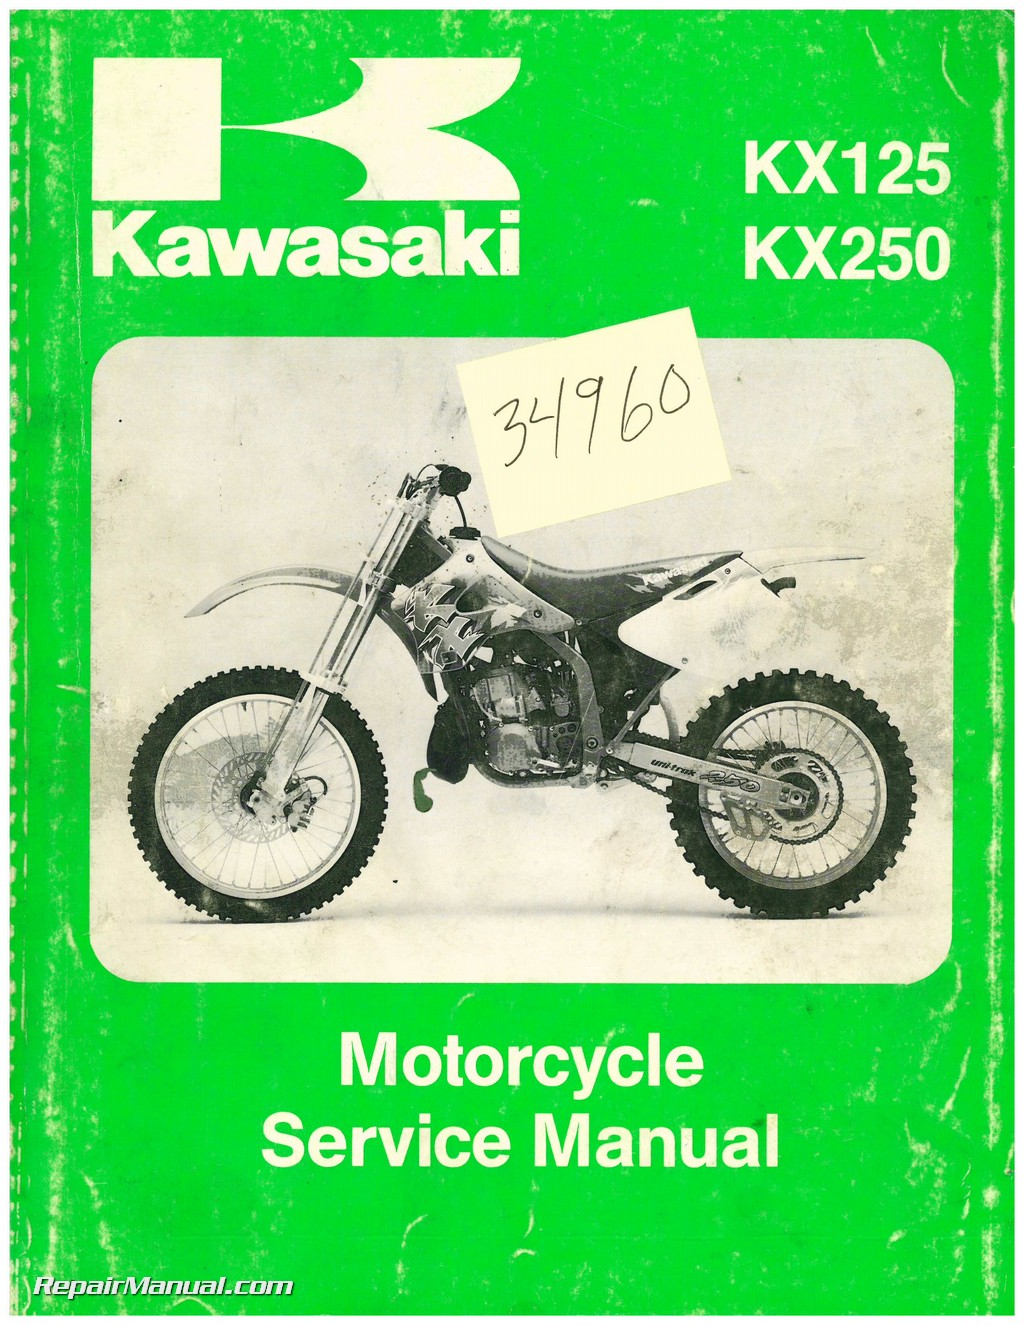 Used 1994 Kawasaki Kx125 Kx250 Service Manual